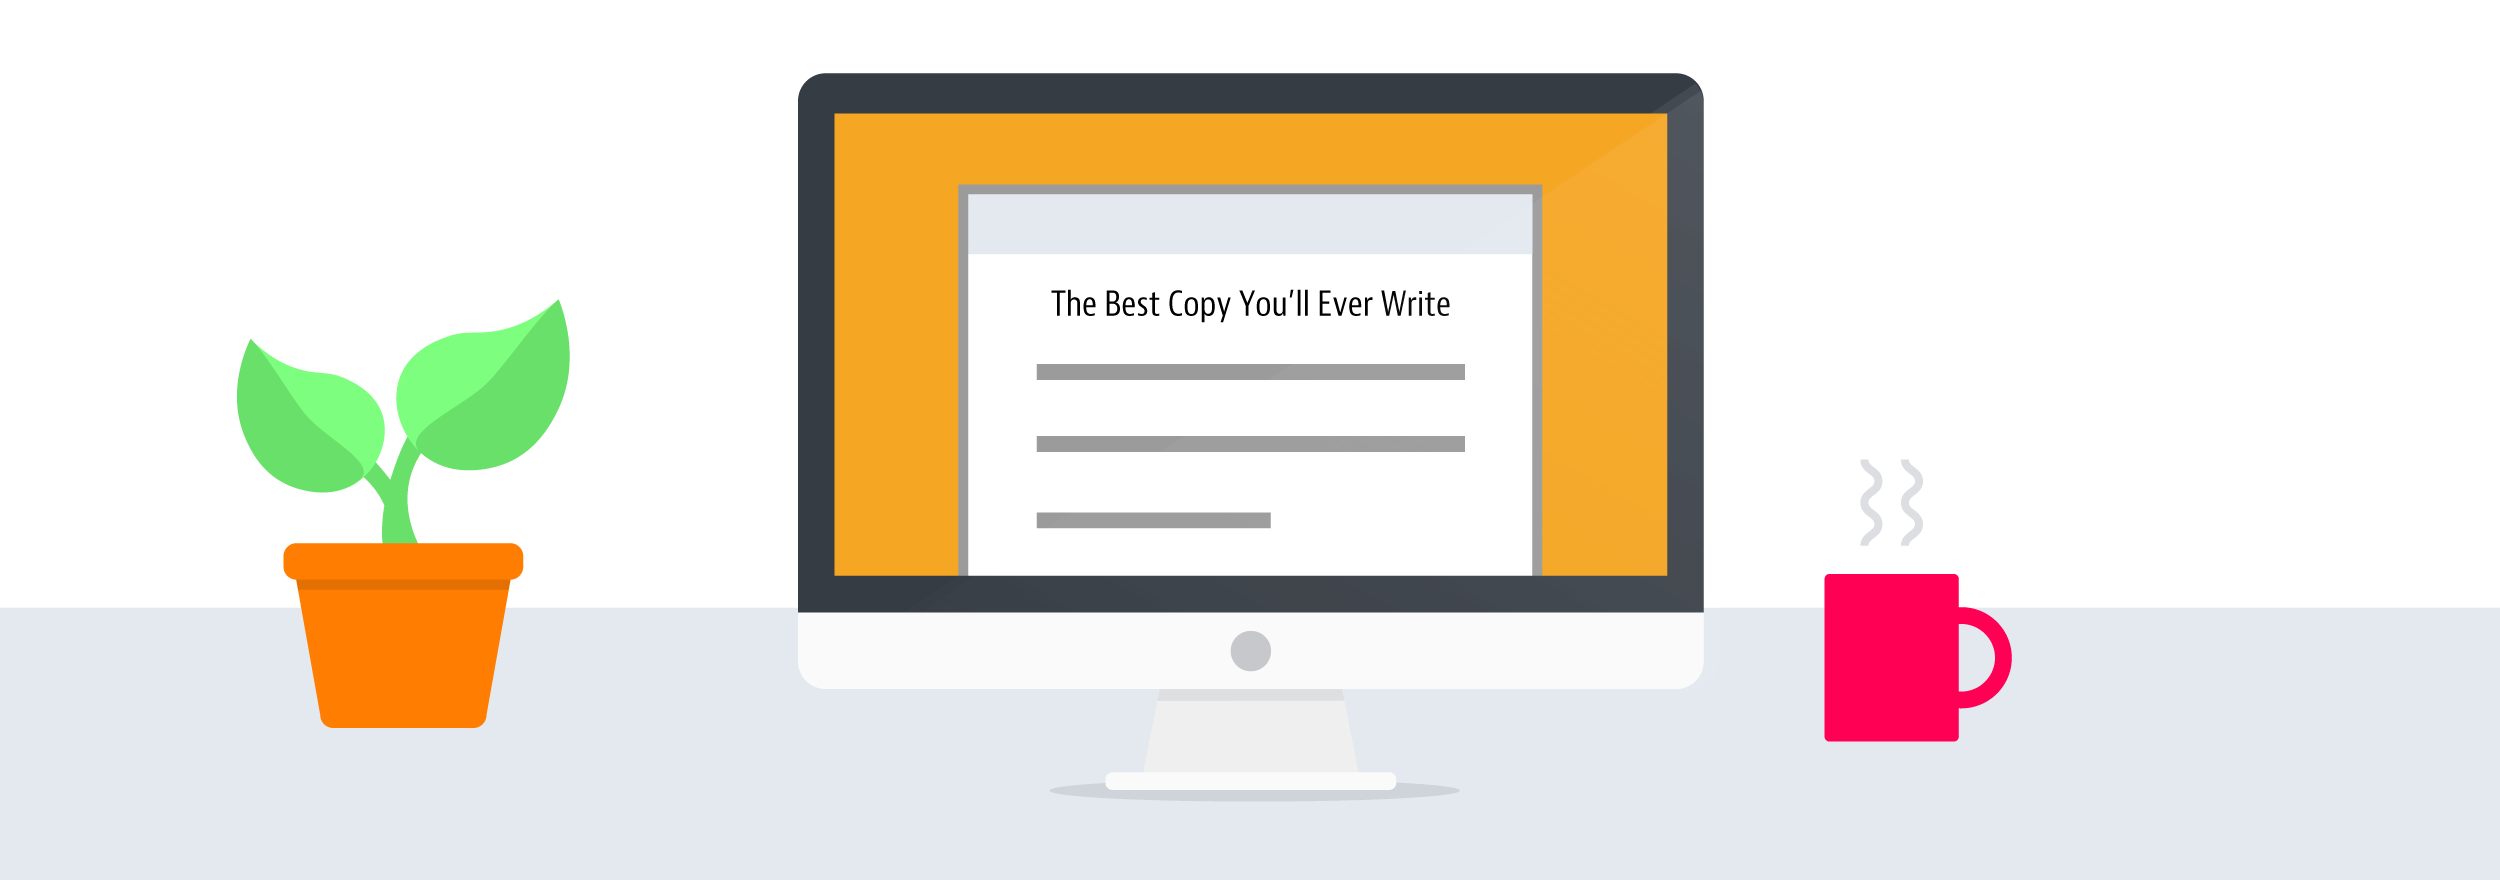 How to Optimize Ad Copy For Maximizing Lead Conversions